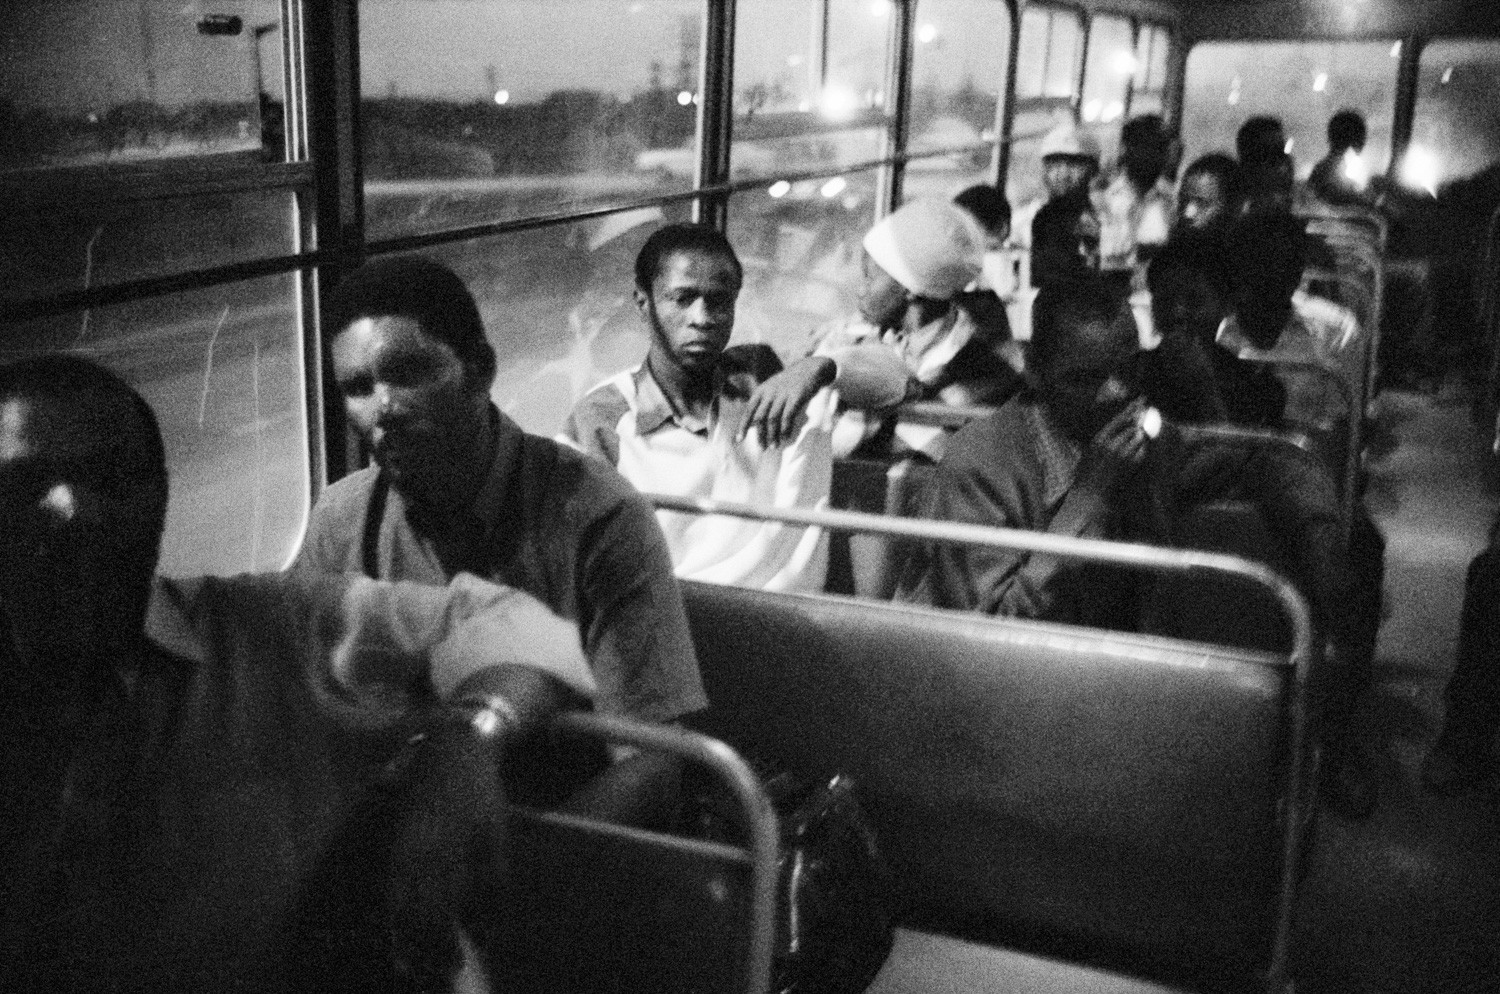 David Goldblatt, 7:00 pm. Going home: Pulling out of Pretoria. The 7:00 pm bus from Marabastad to Waterval in KwaNdebele, 1983